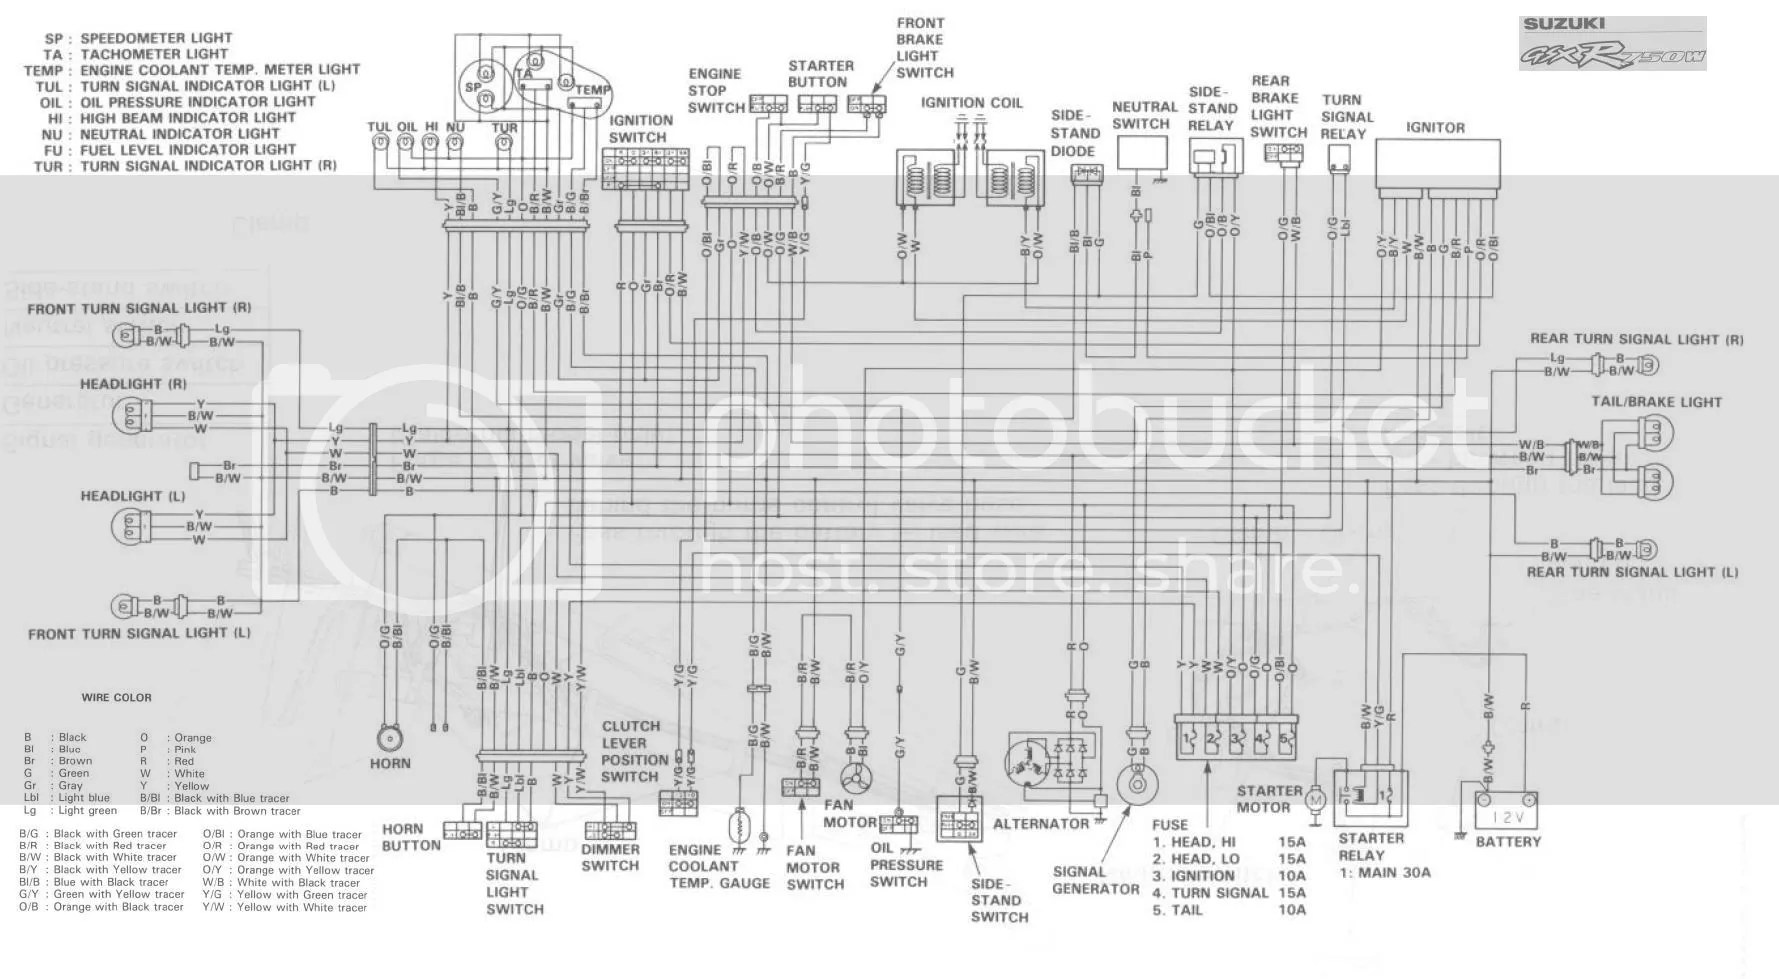 suzuki gsx 750 f wiring diagram aem wideband civic 2006 gsxr library